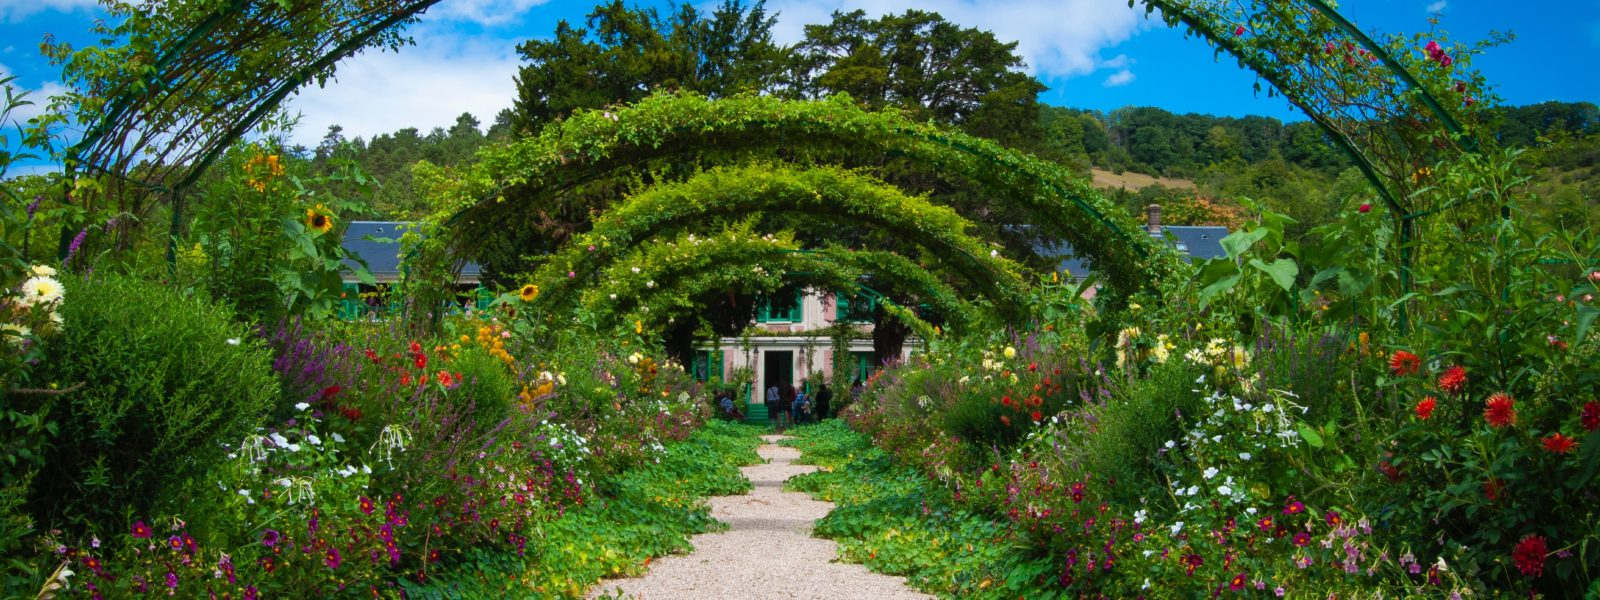 6 Exciting Garden Trends for 2020